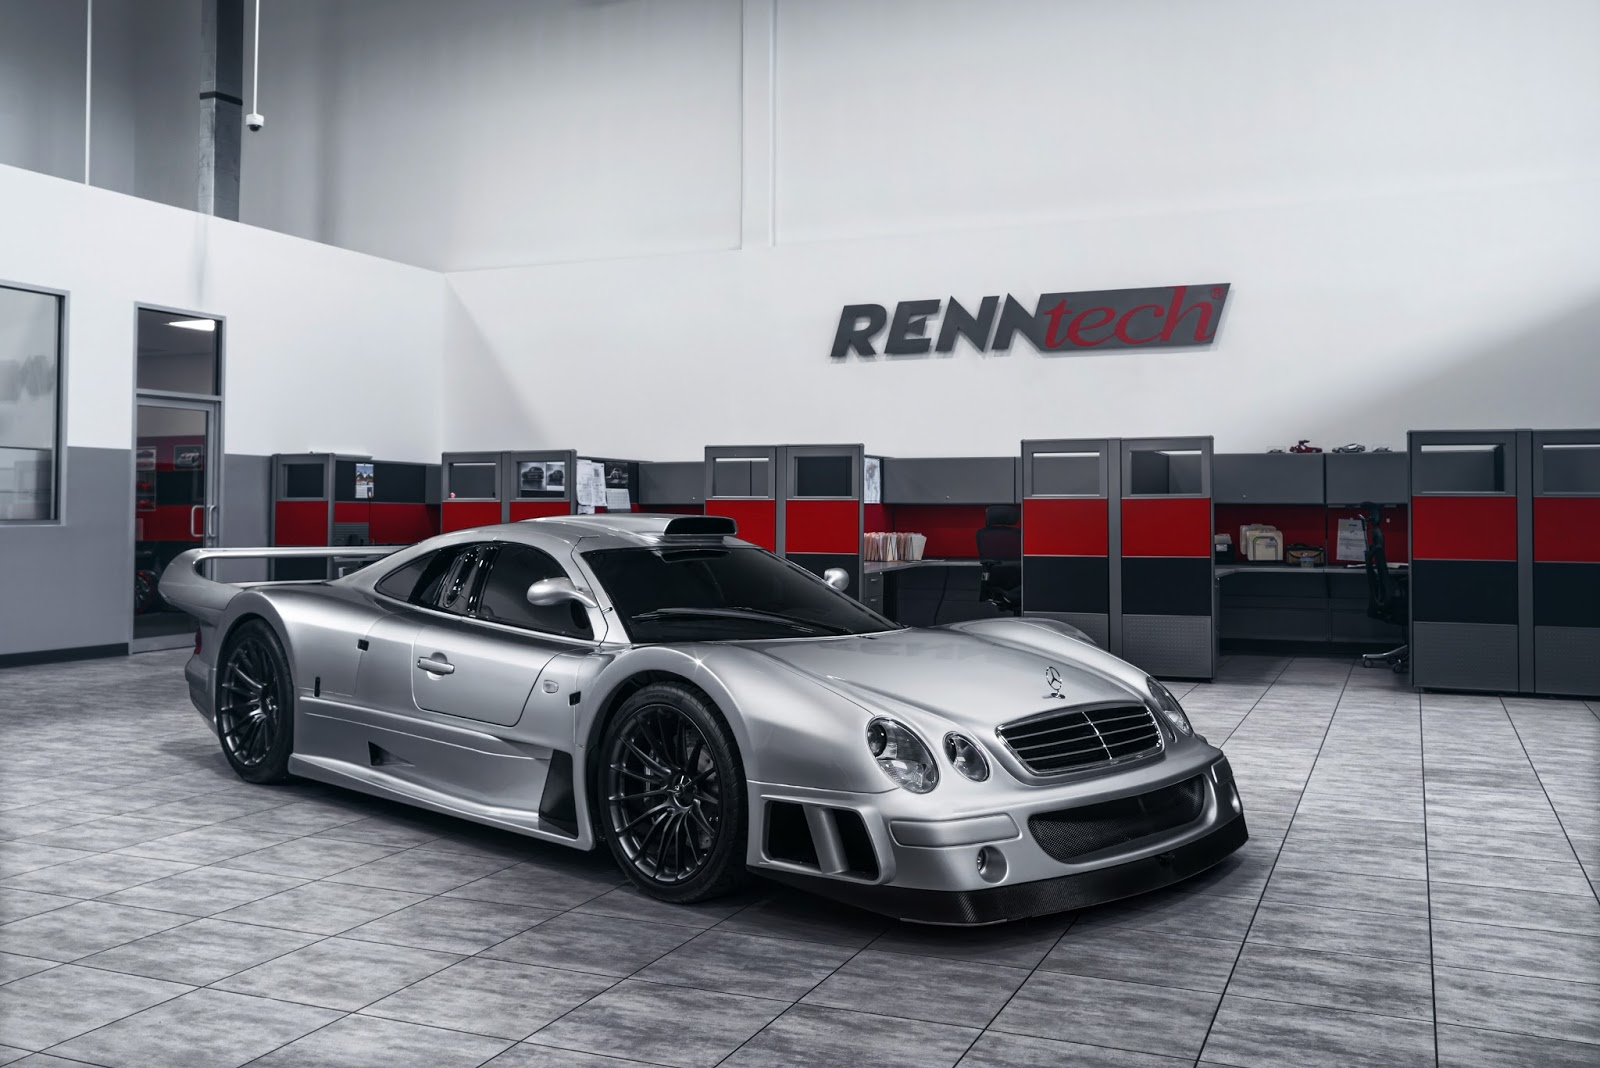 renntech news mercedes clk gtr a true supercar unicorn. Black Bedroom Furniture Sets. Home Design Ideas